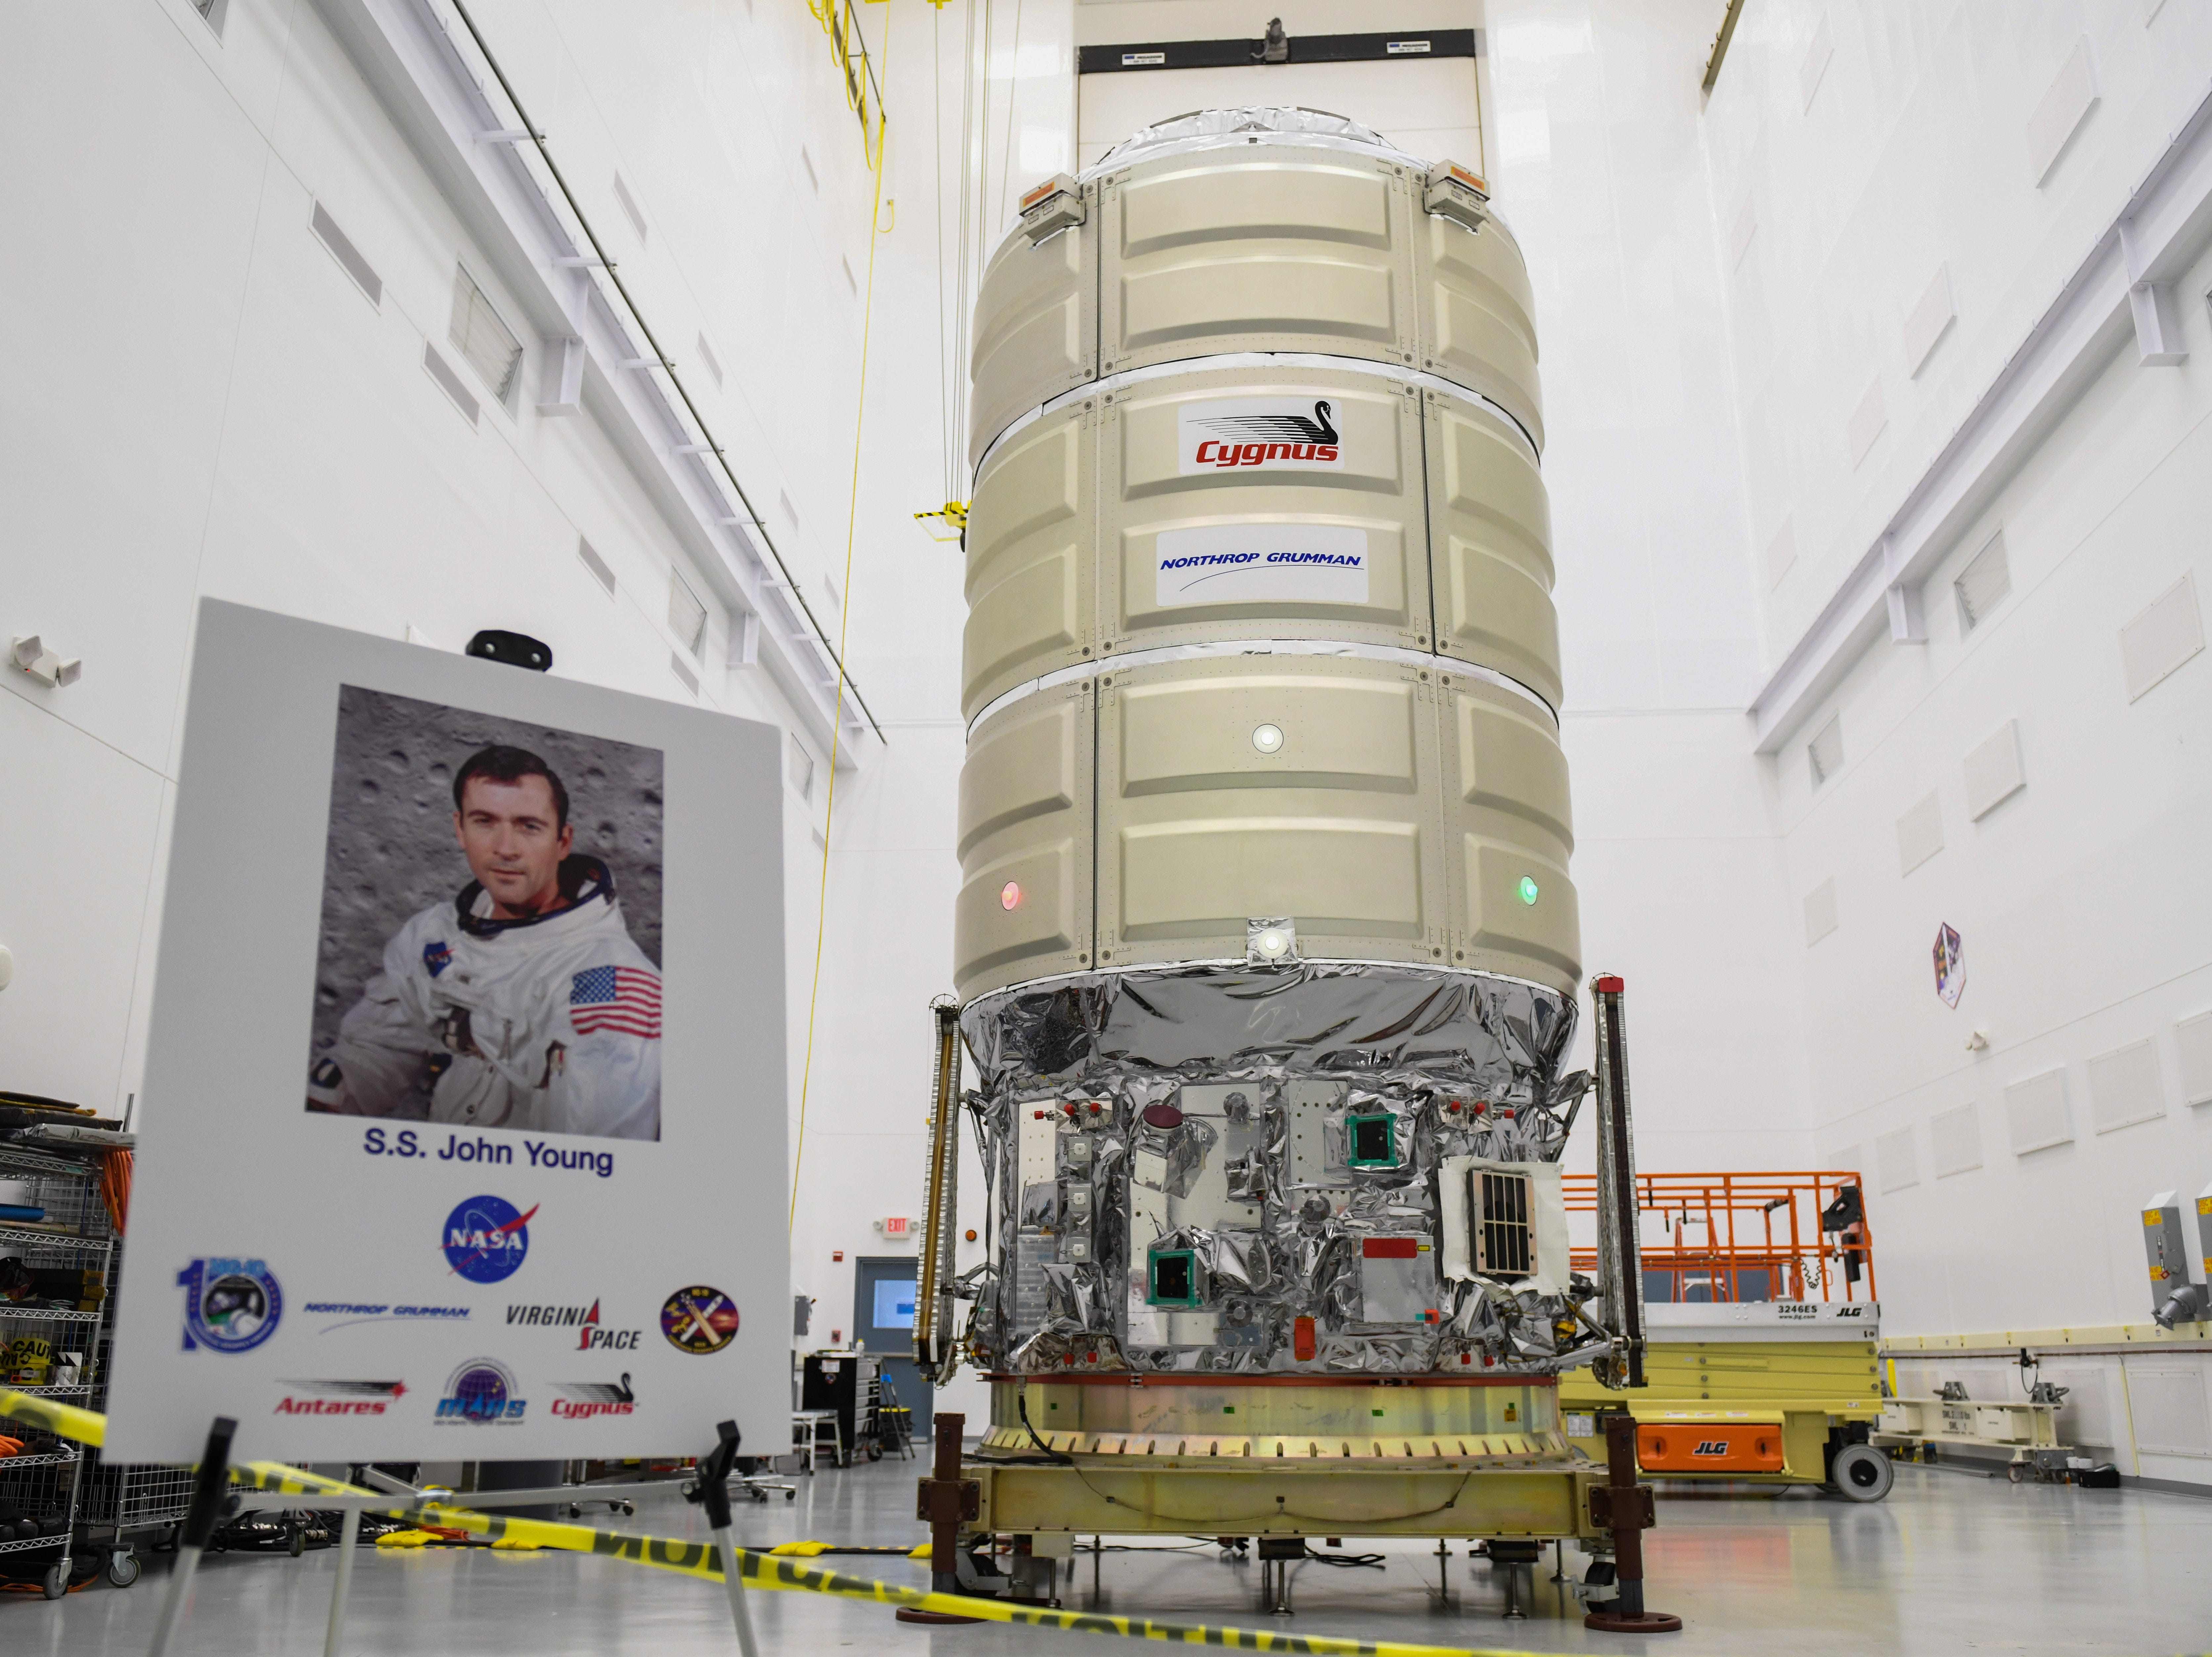 The new Cygnus spacecraft is revealed Wednesday, Oct 24, 2018. The unmanned craft is planned to launch Nov. 15 on a resupply mission for the International Space Station.